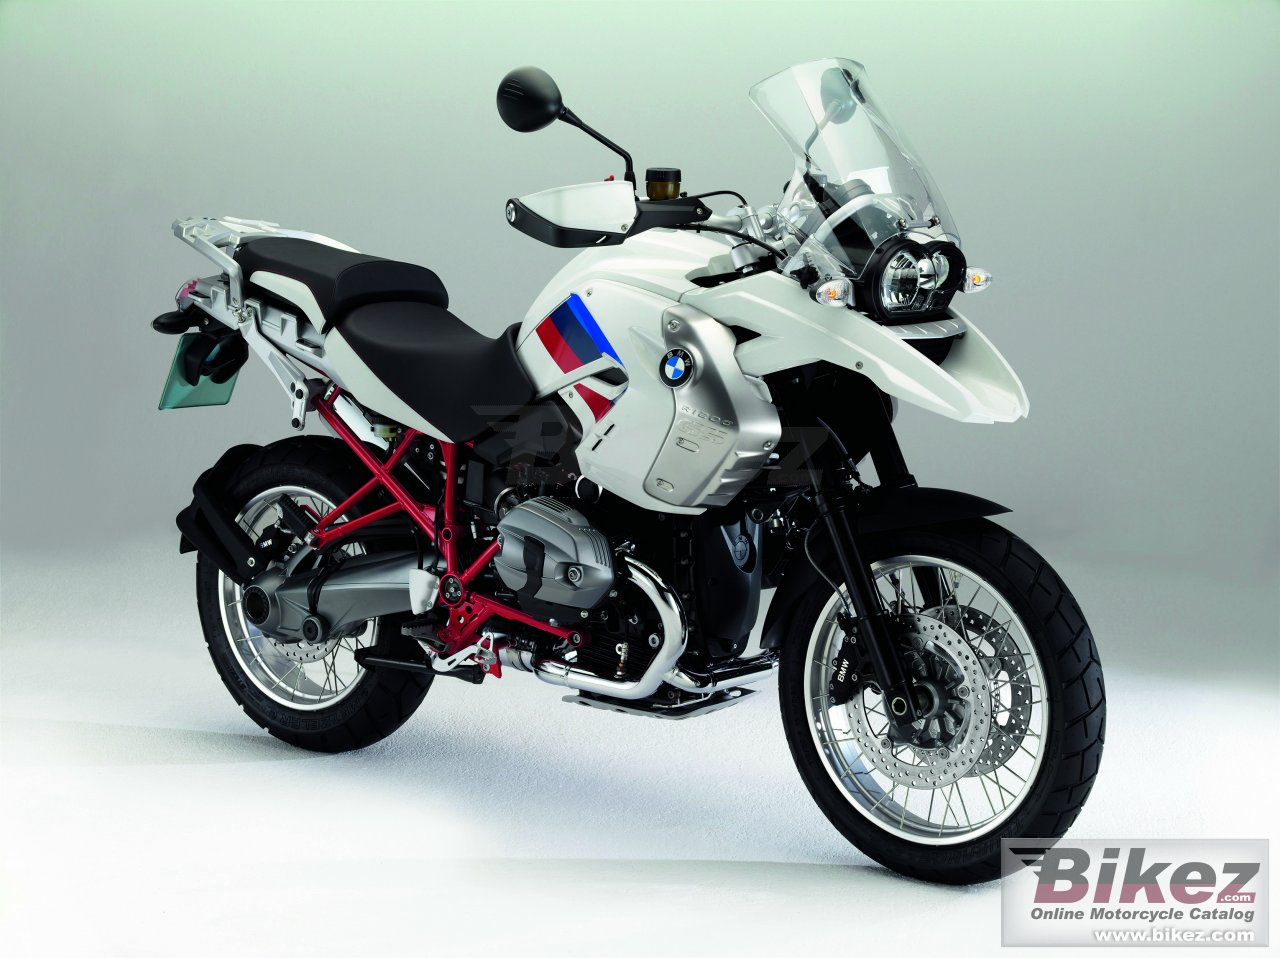 Big BMW r 1200 gs rallye picture and wallpaper from Bikez.com